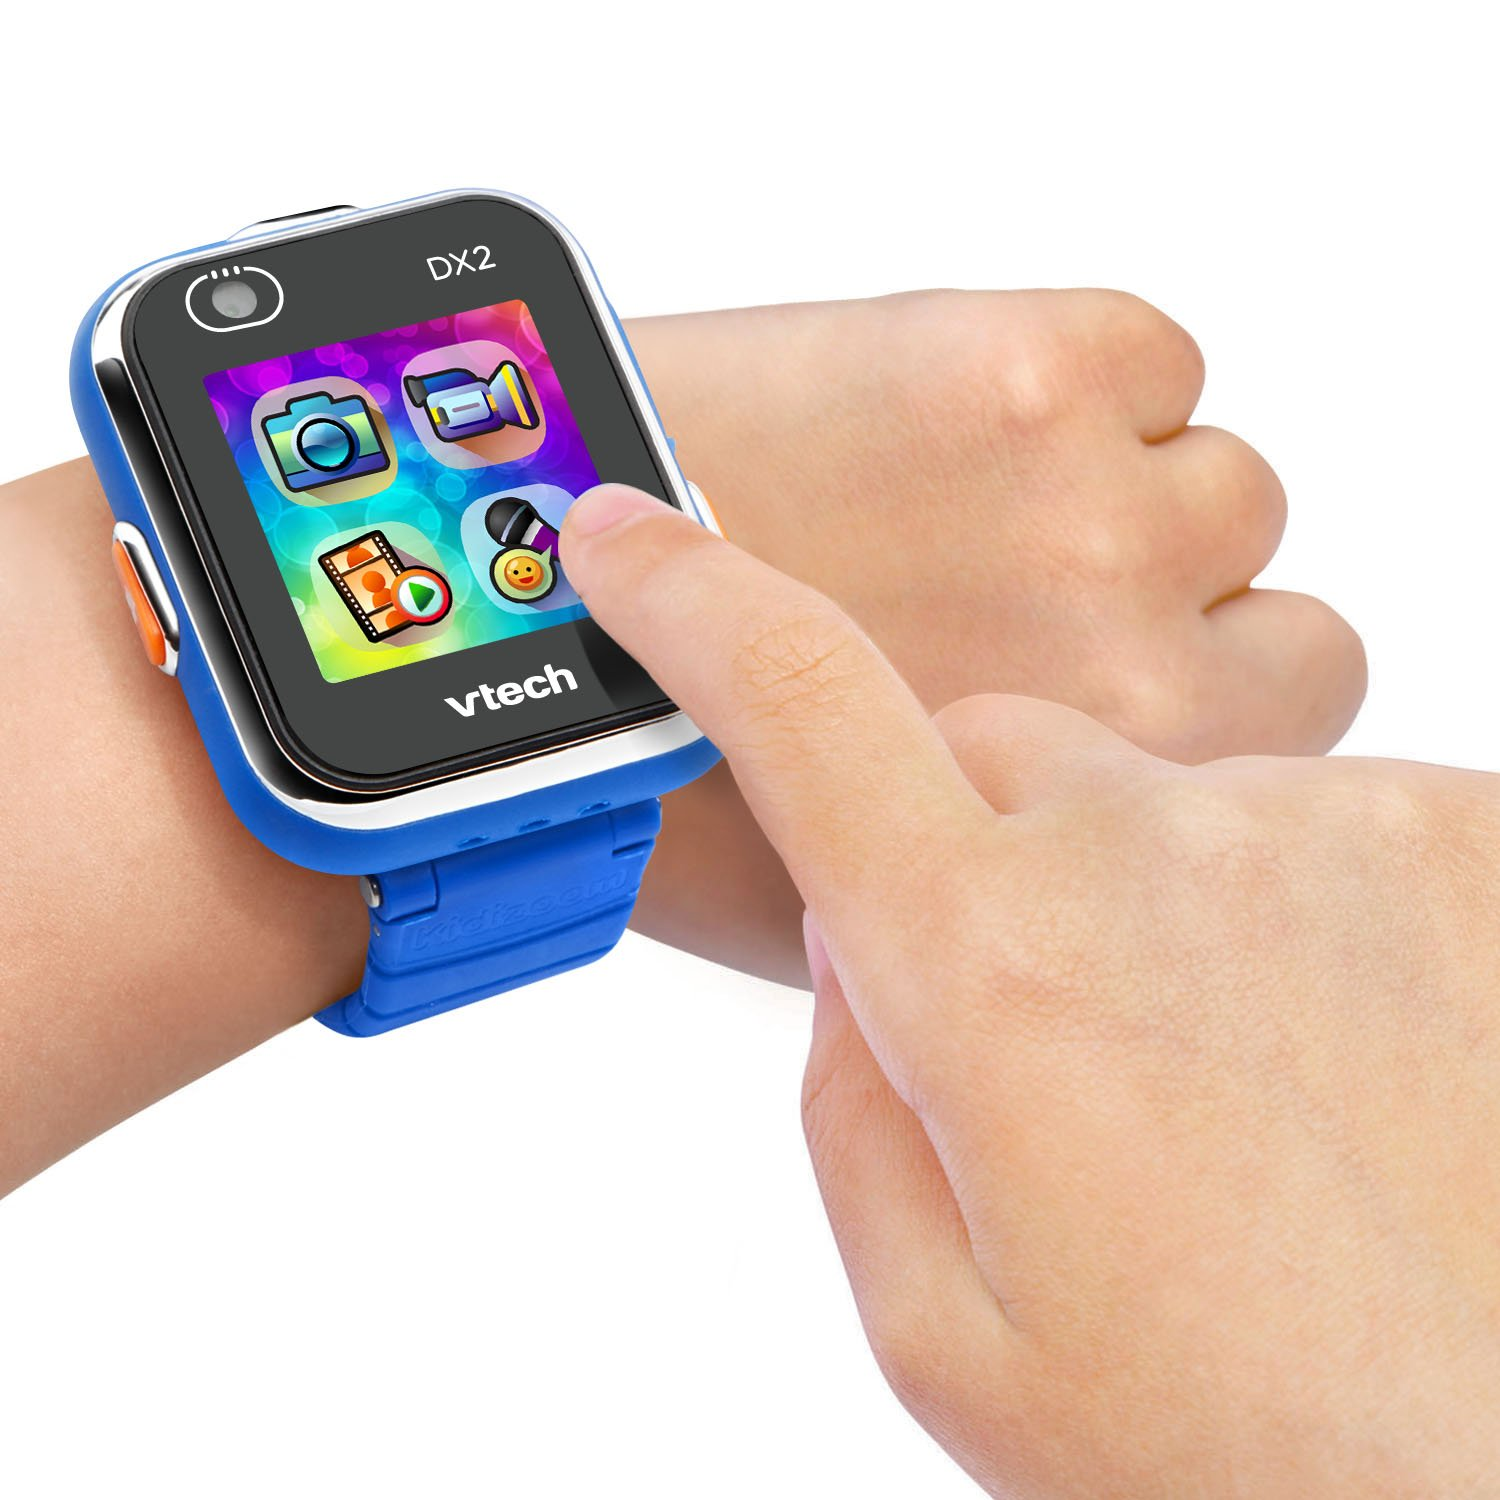 vtech kidizoom on child's wrist